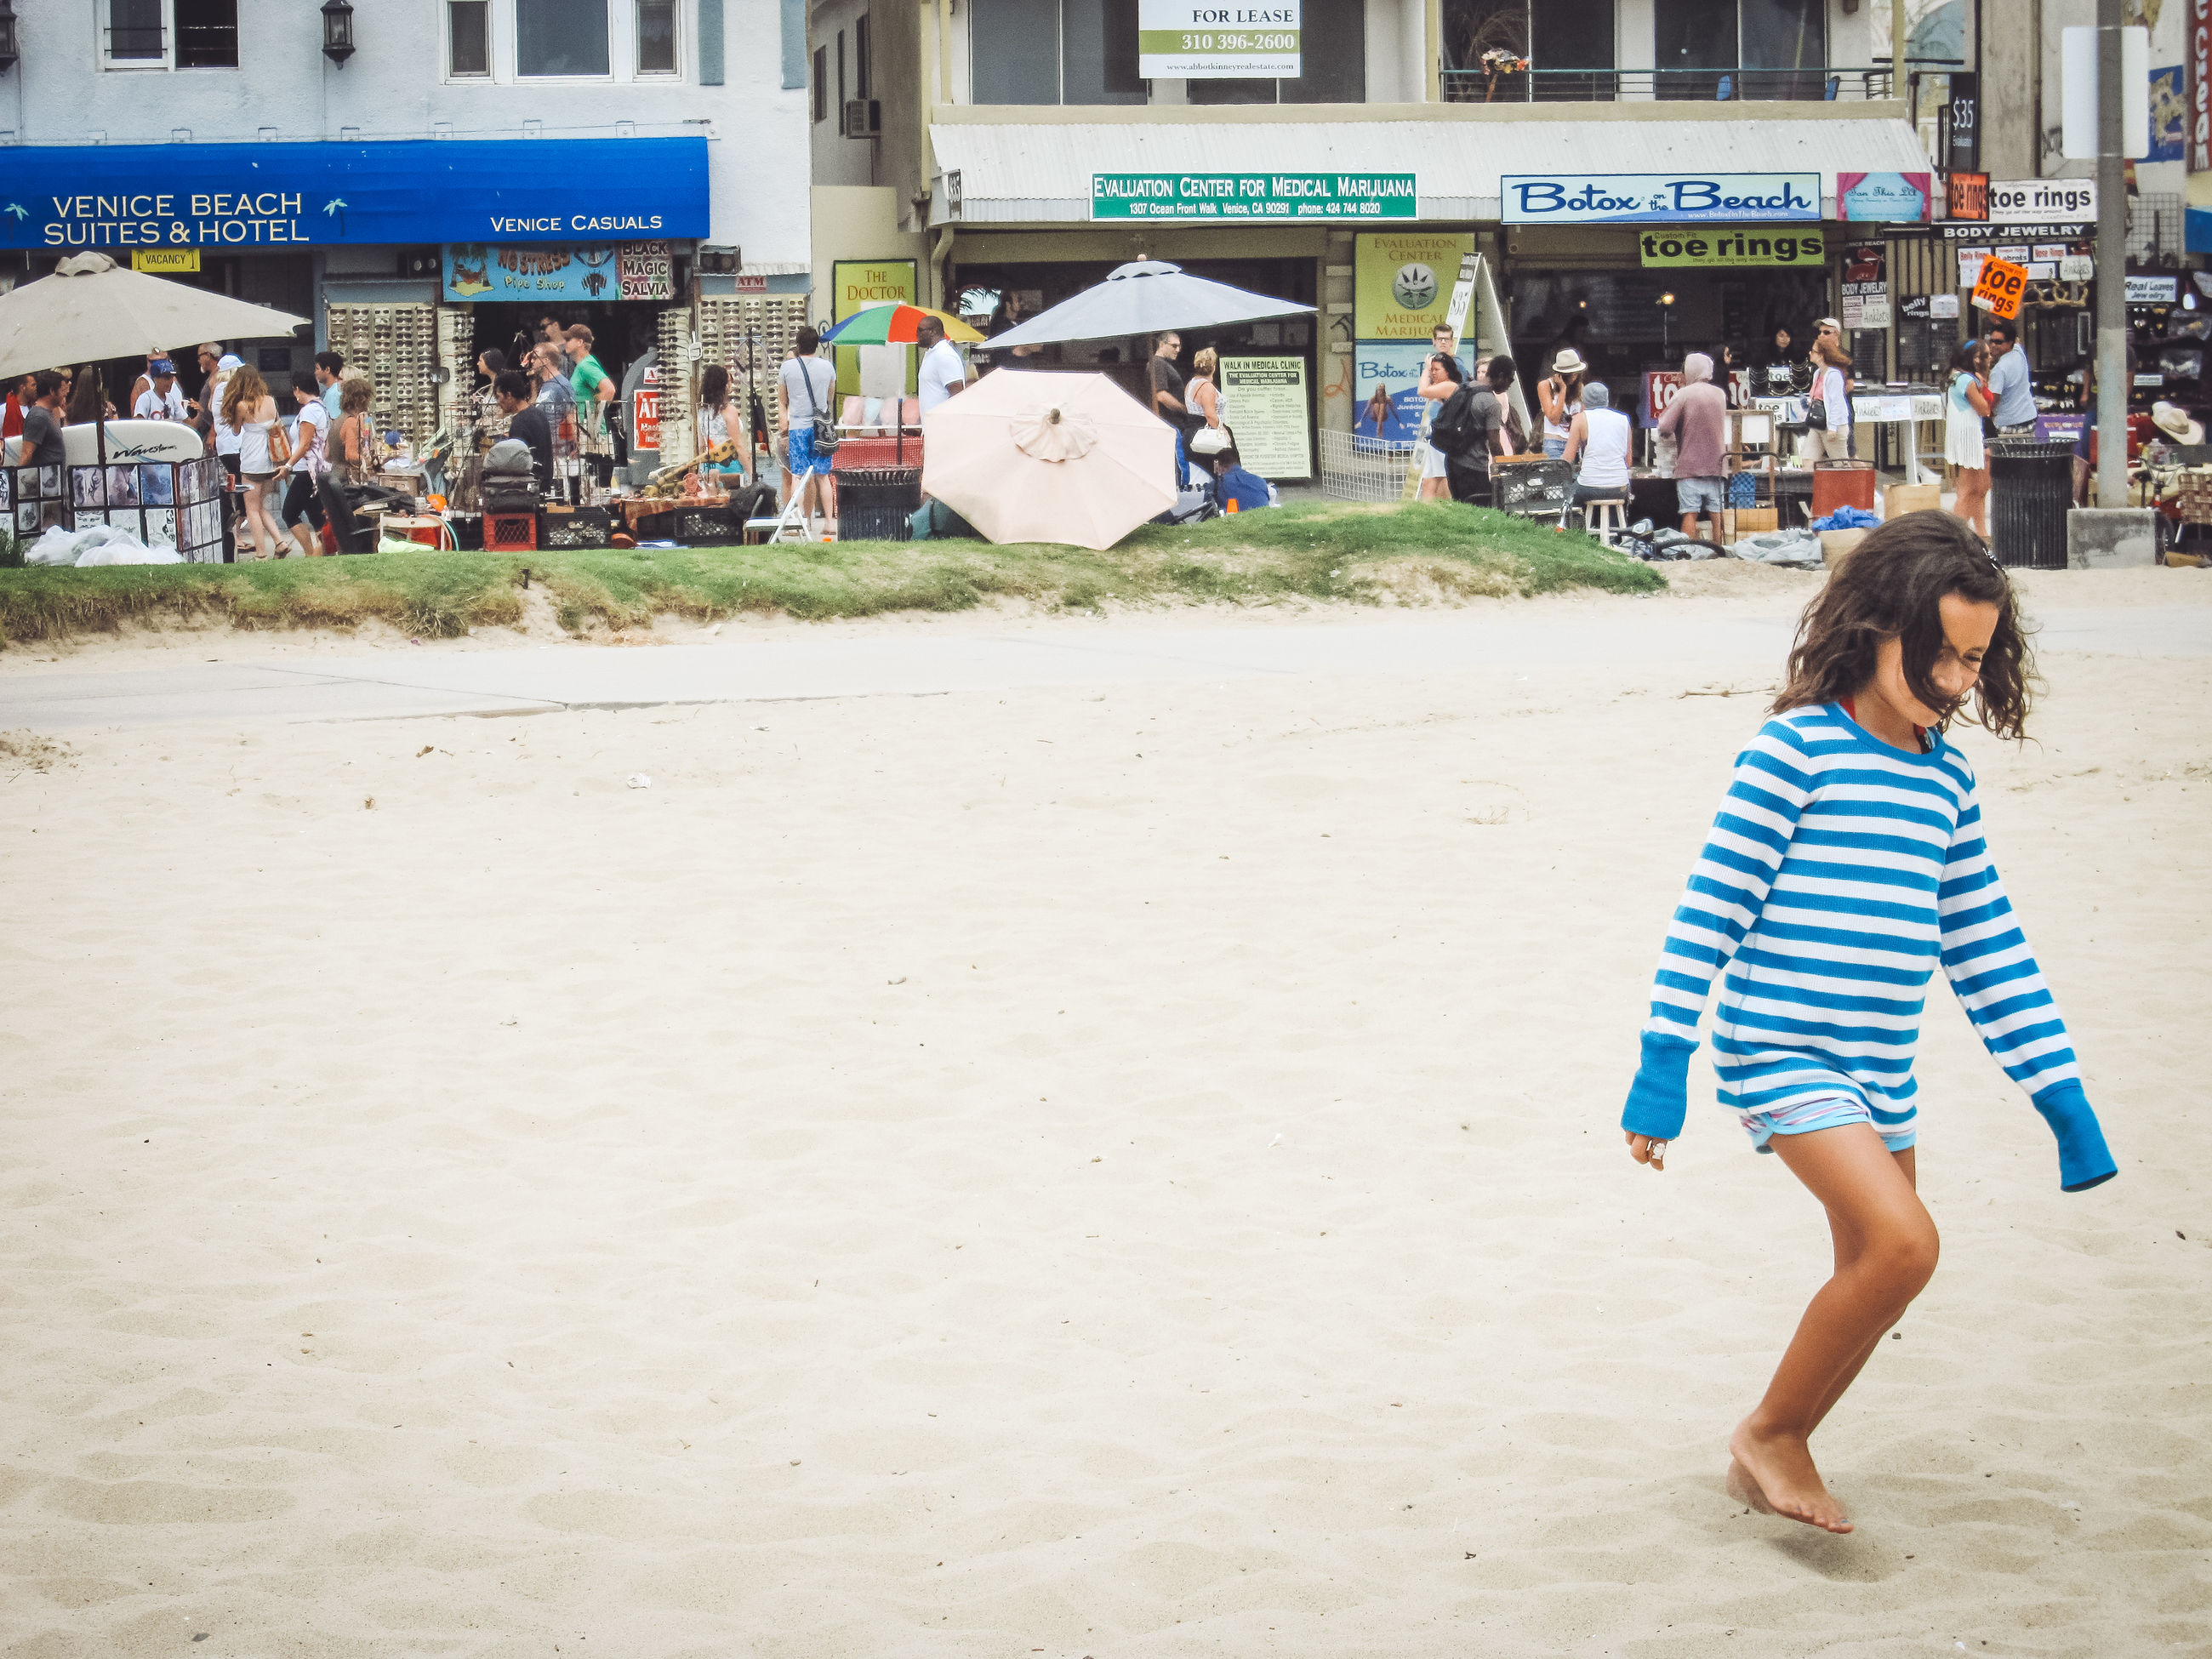 real people, land, one person, women, lifestyles, beach, incidental people, full length, leisure activity, striped, walking, day, girls, sand, casual clothing, architecture, child, city, rear view, outdoors, hairstyle